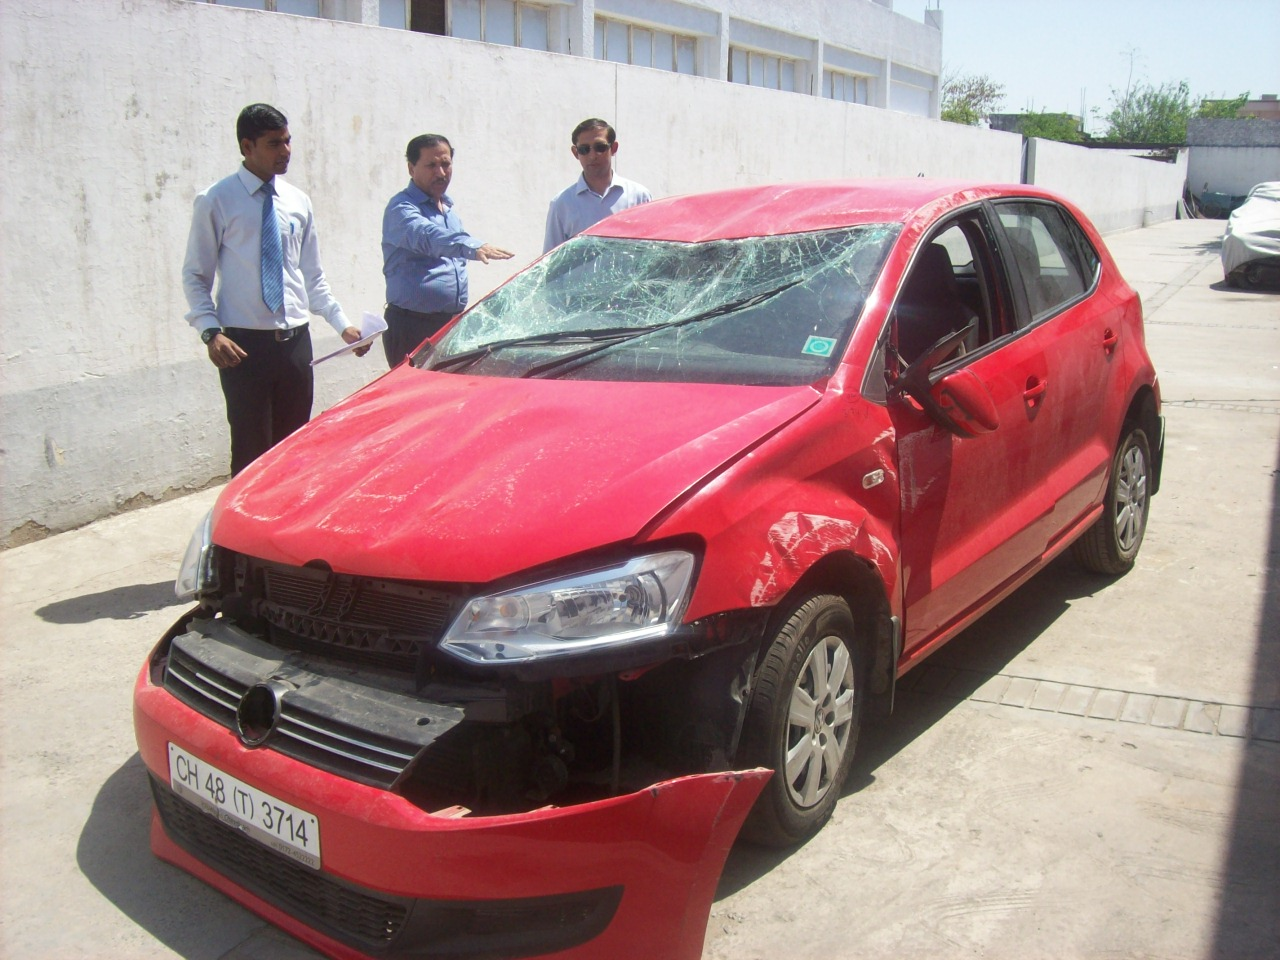 Vehicles For Sale: Damaged Cars For Sale In Delhi